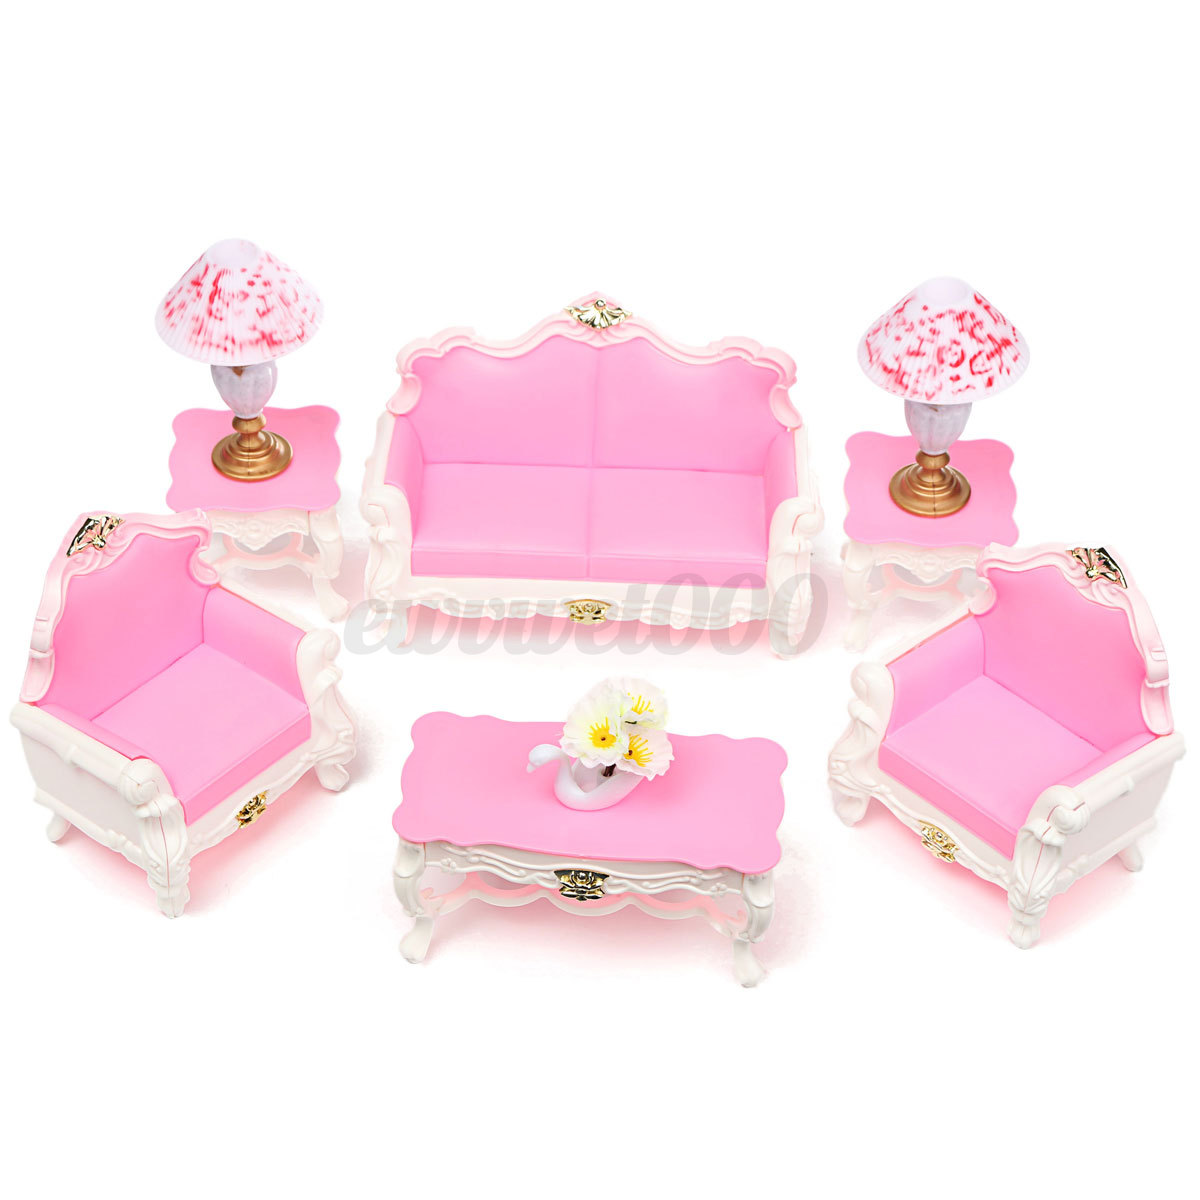 Chair Table Bed Living Room Dollhouse Miniature Furniture Doll Barbie Toys Baby | eBay